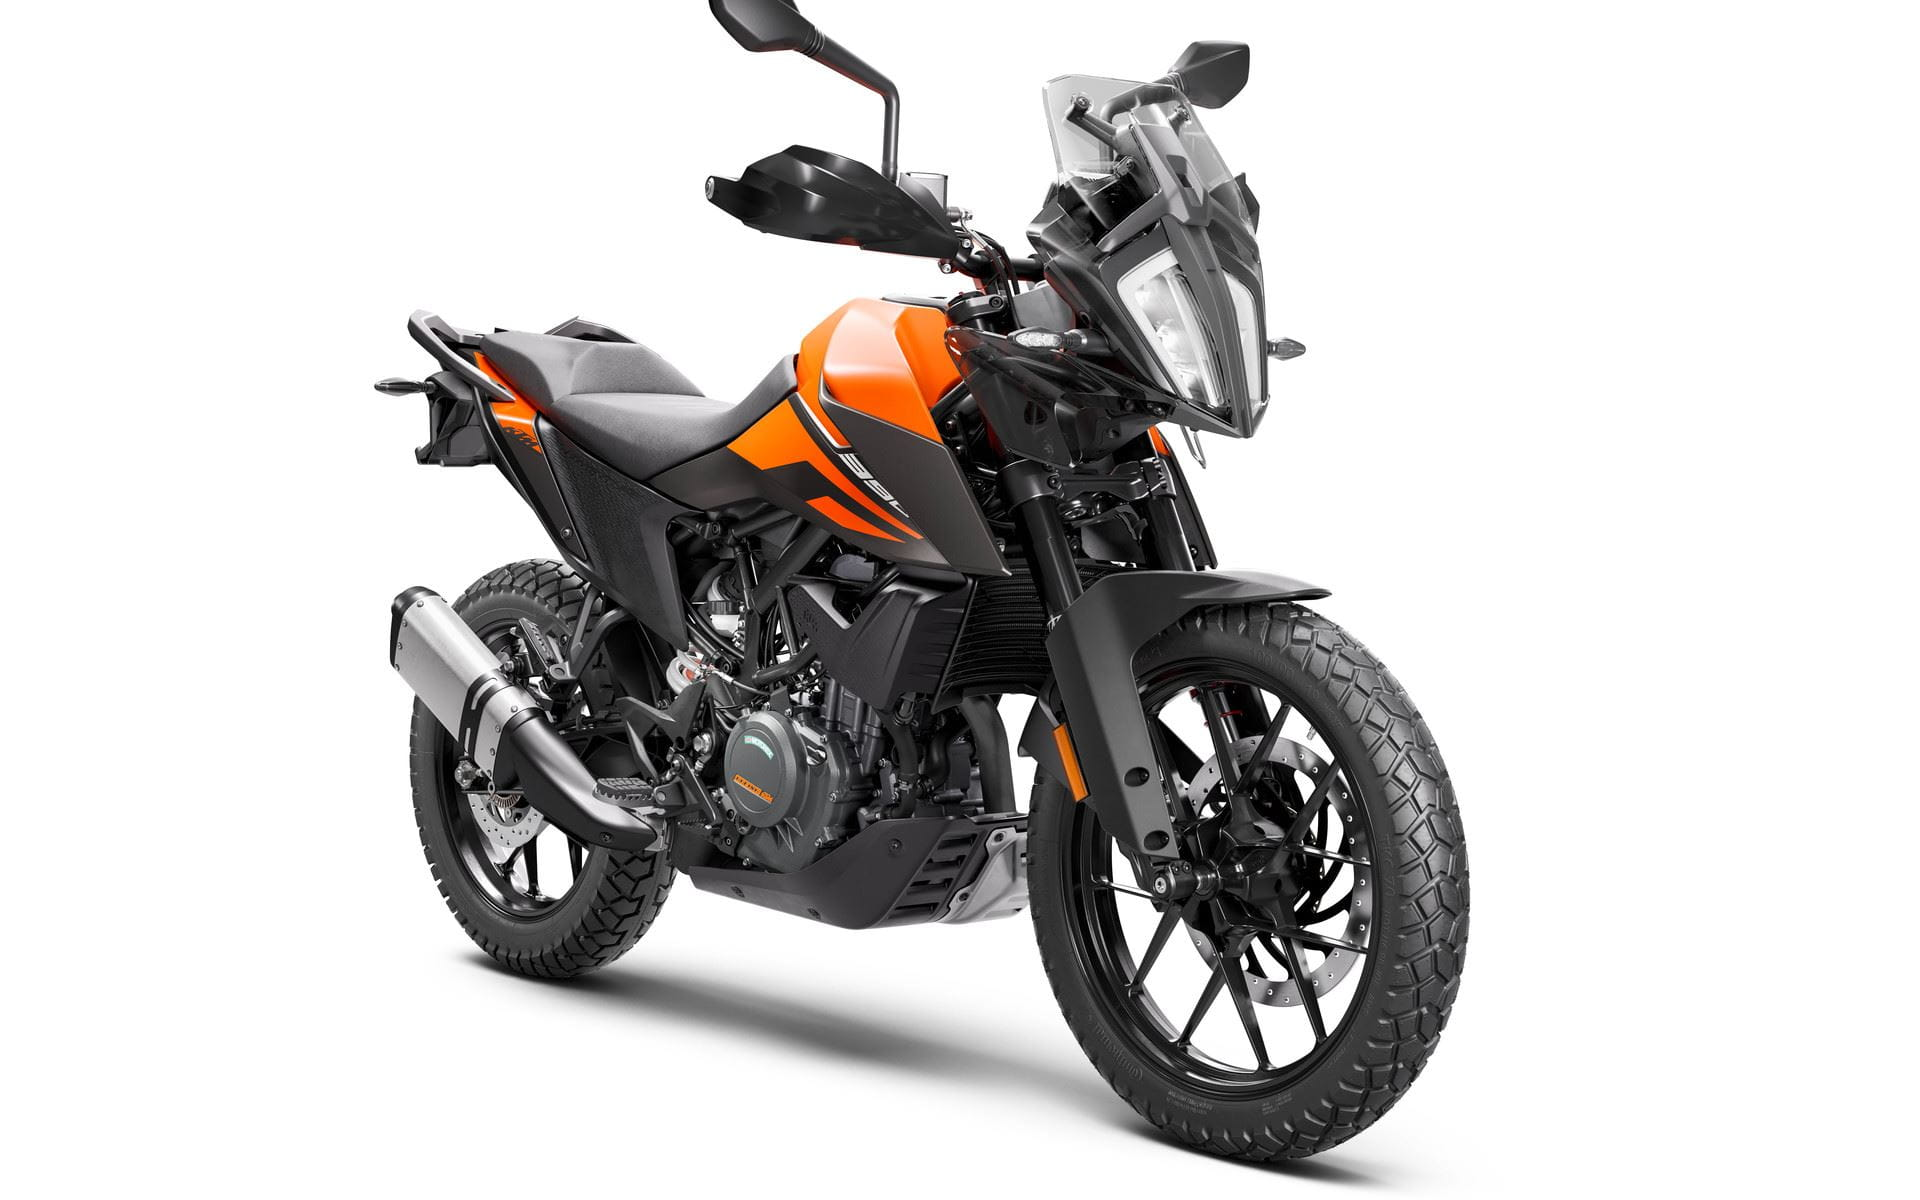 New KTM 390 Adventure released for 2020